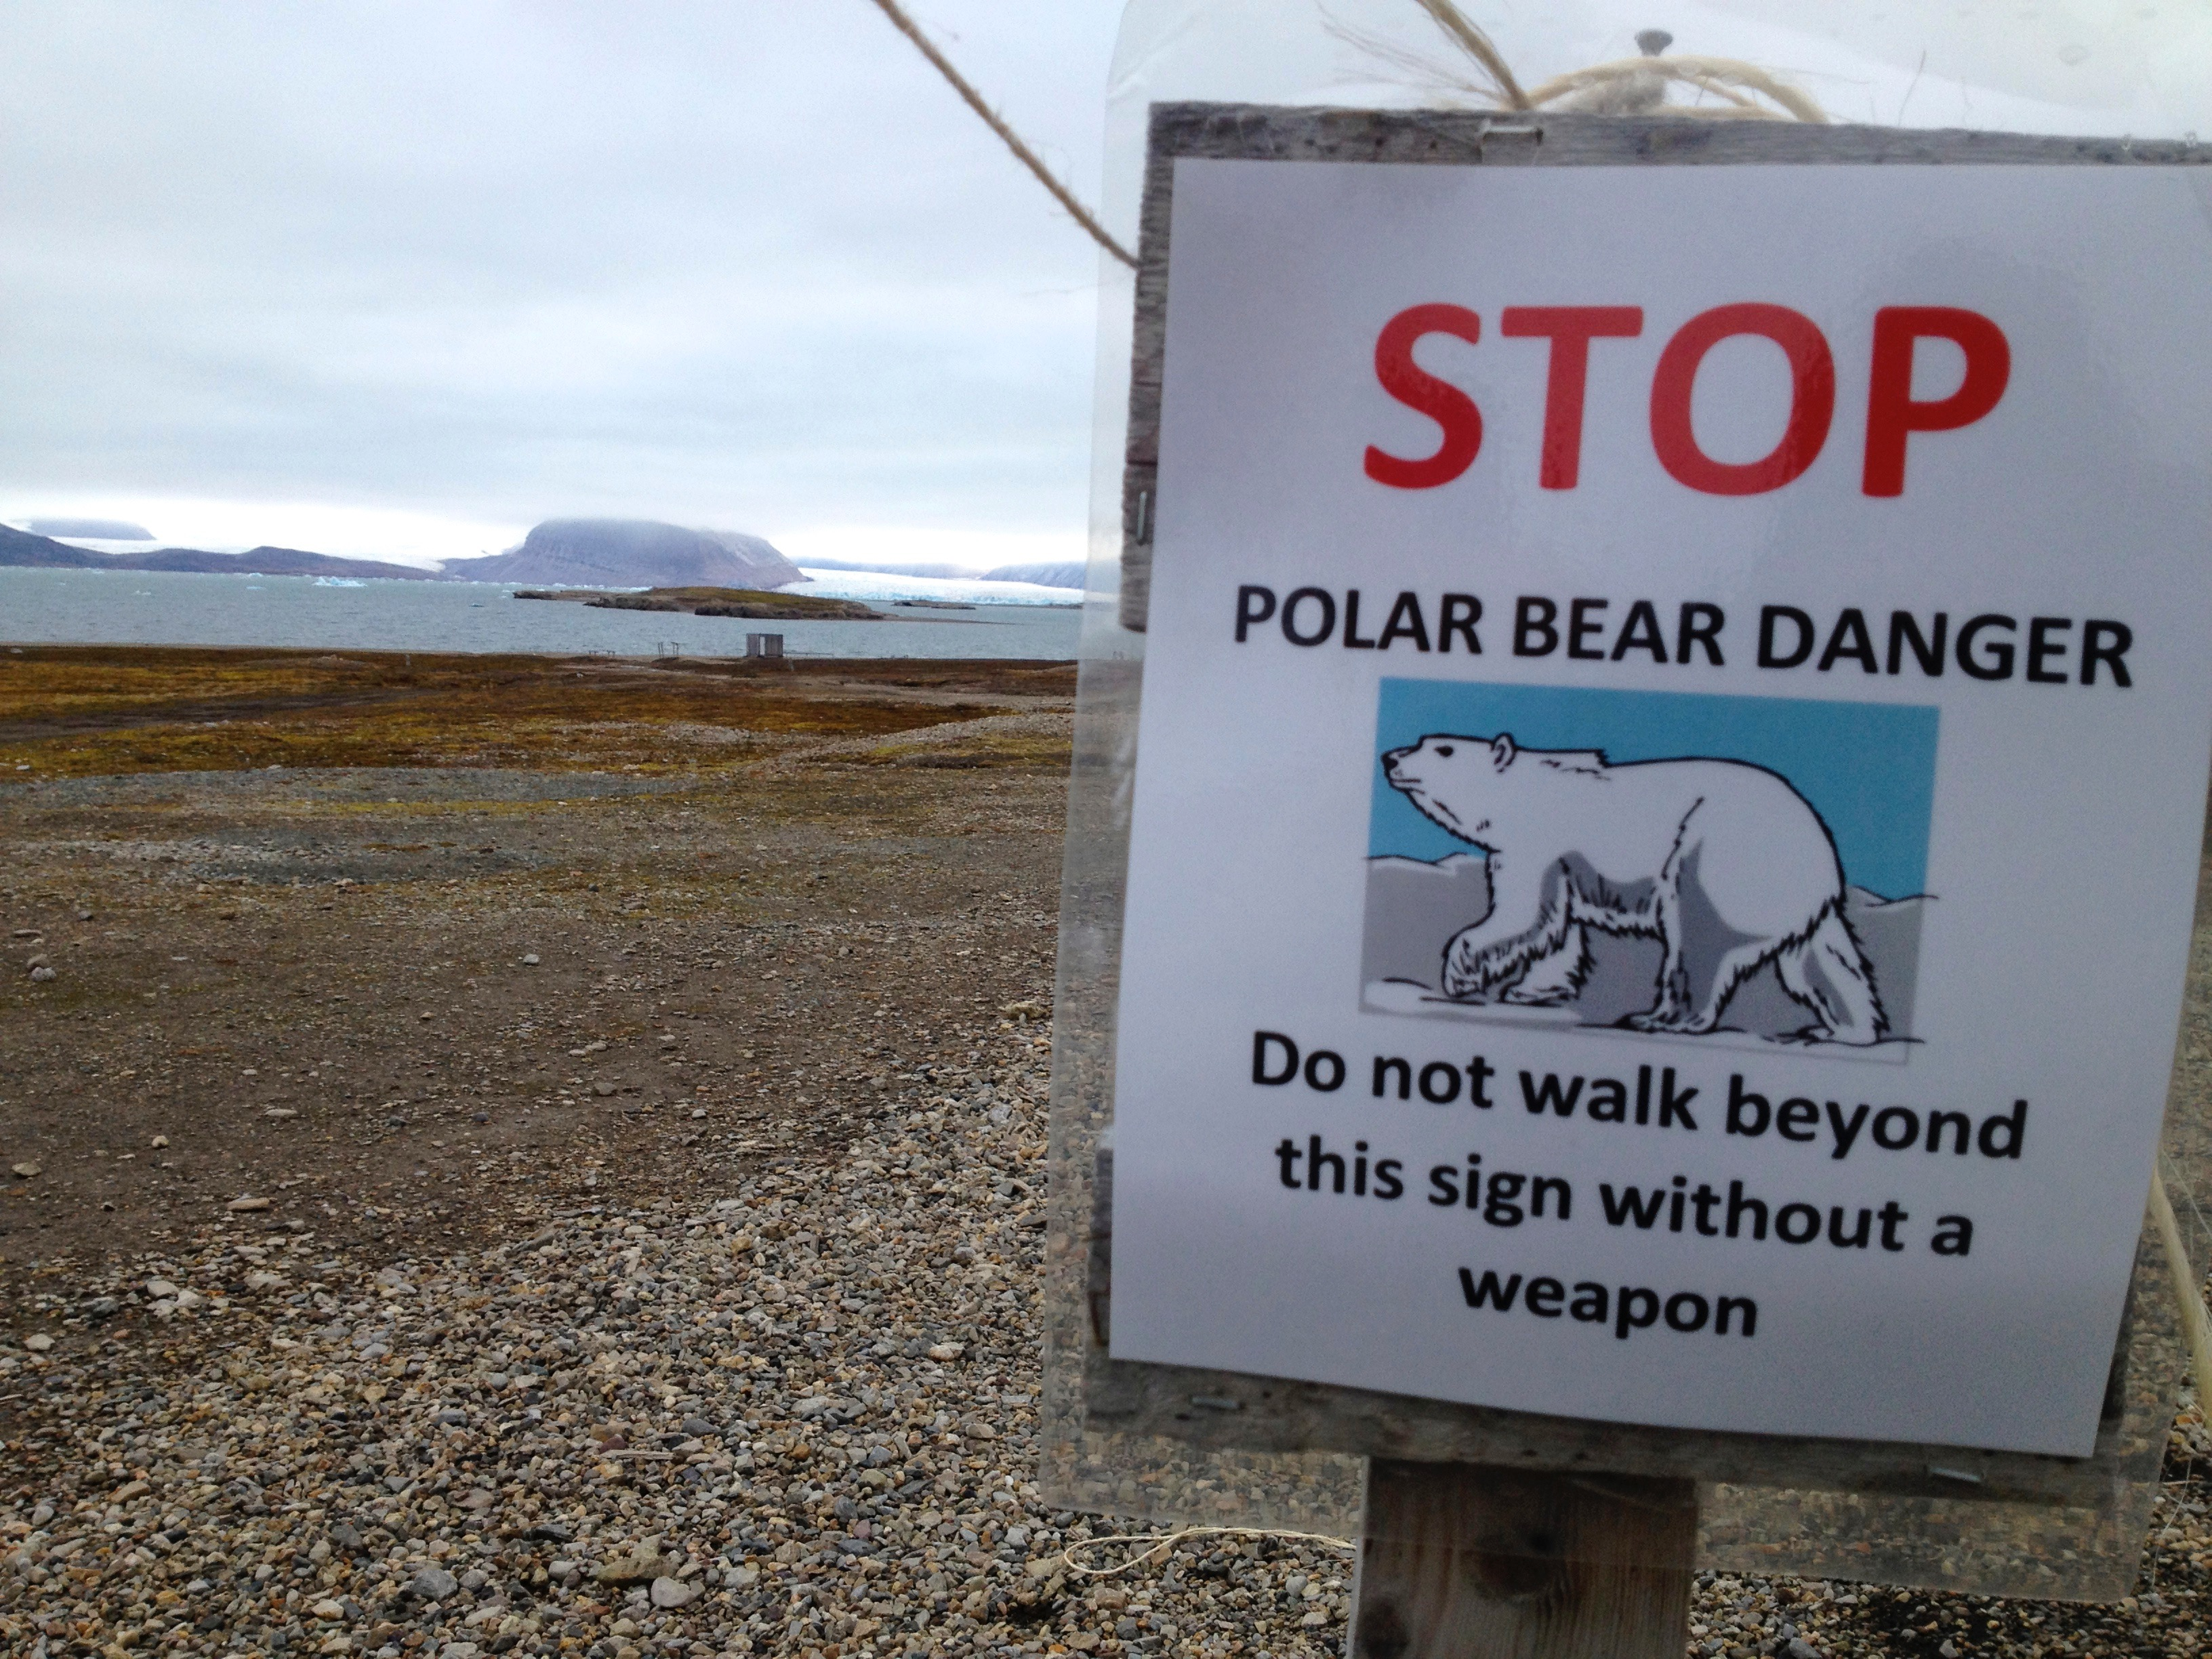 Some of my research in Norway was conducted in the research town of Ny-Ålesund on the island of Svalbard. They had polar bear warning signs posted around the town.